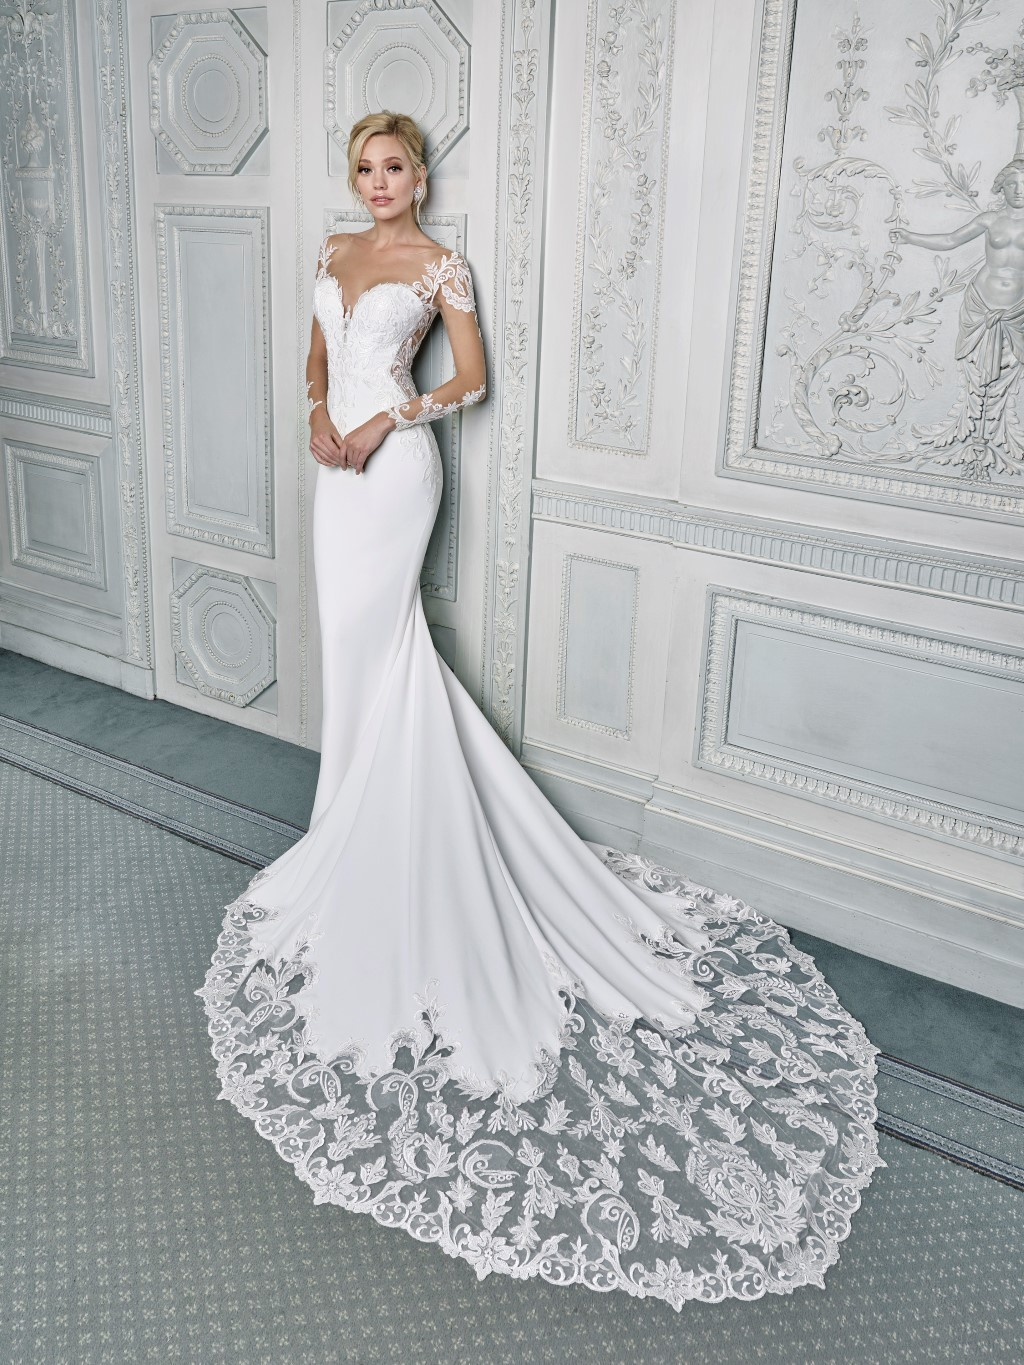 Ellis Bridals Wedding Dresses Are Stocked In A Handpicked Selection Of S Around The World From Uk Europe To Bridal Across Us